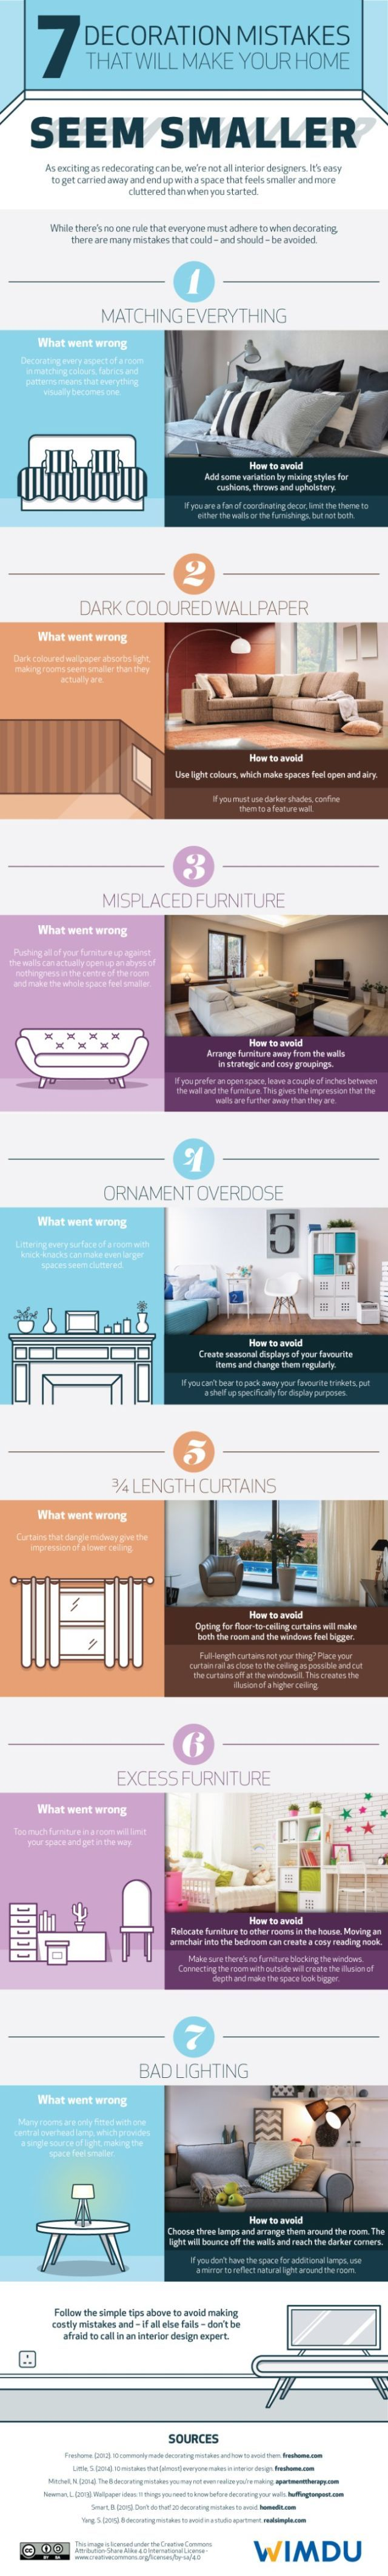 7 Decorating Mistakes That Make Your Home Feel Smaller